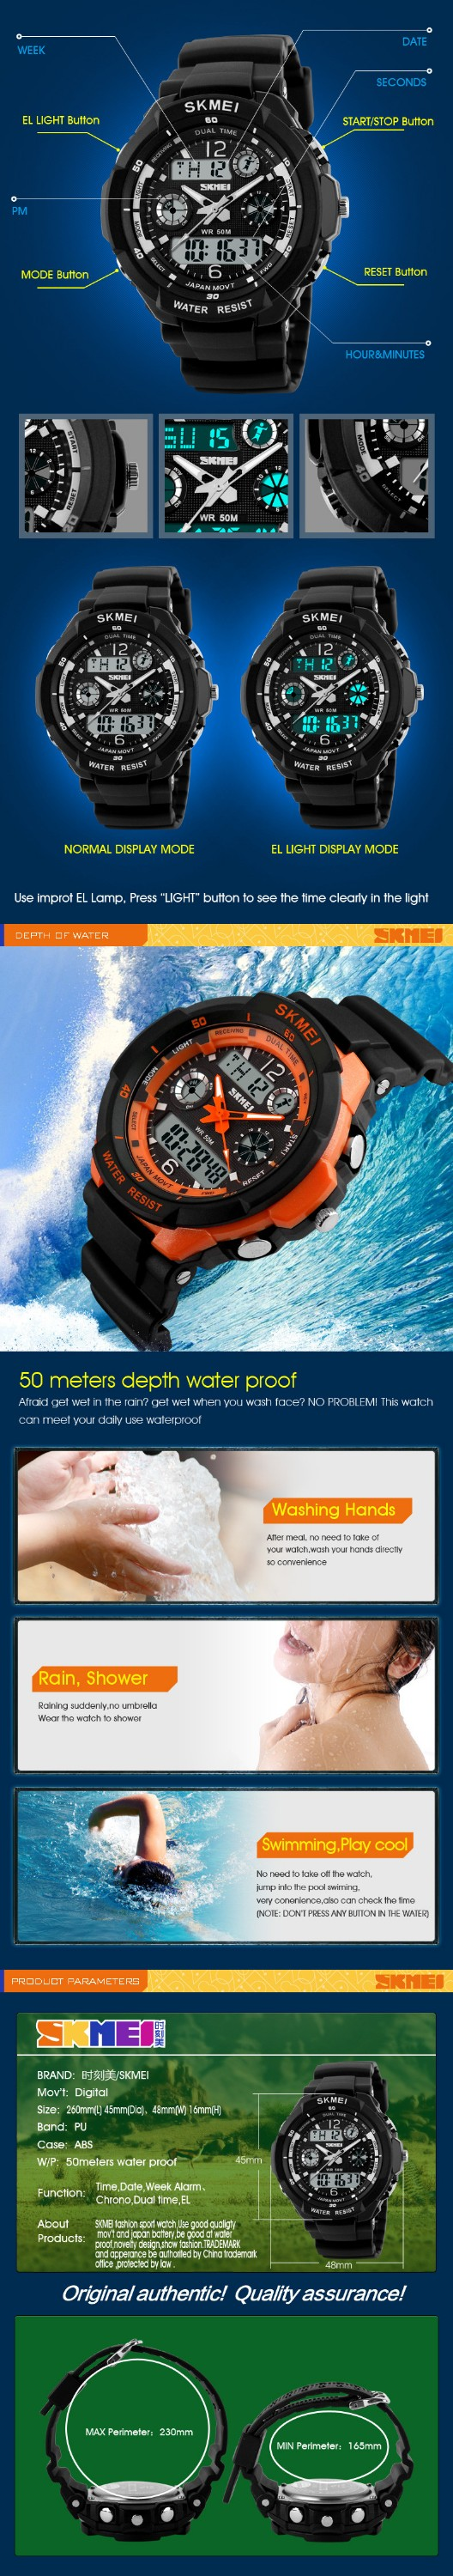 Luxury band skmei 0931 shock resistant waterproof sport watch digital for men